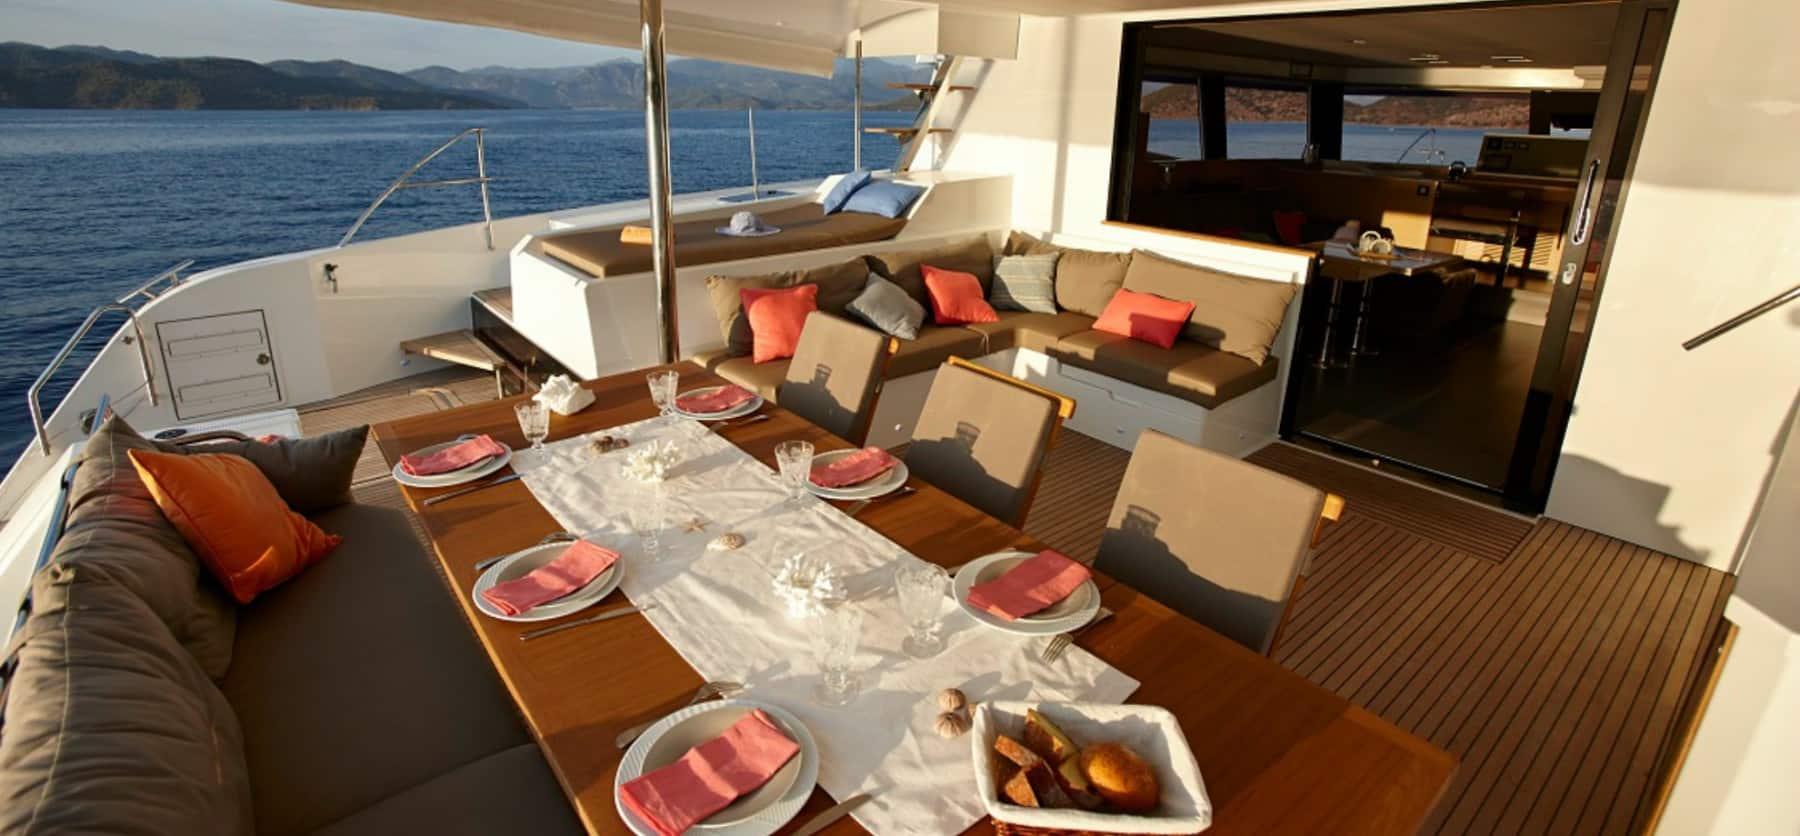 Table set for a romantic evening on the cockpit area of the Pajot Ipanema 58